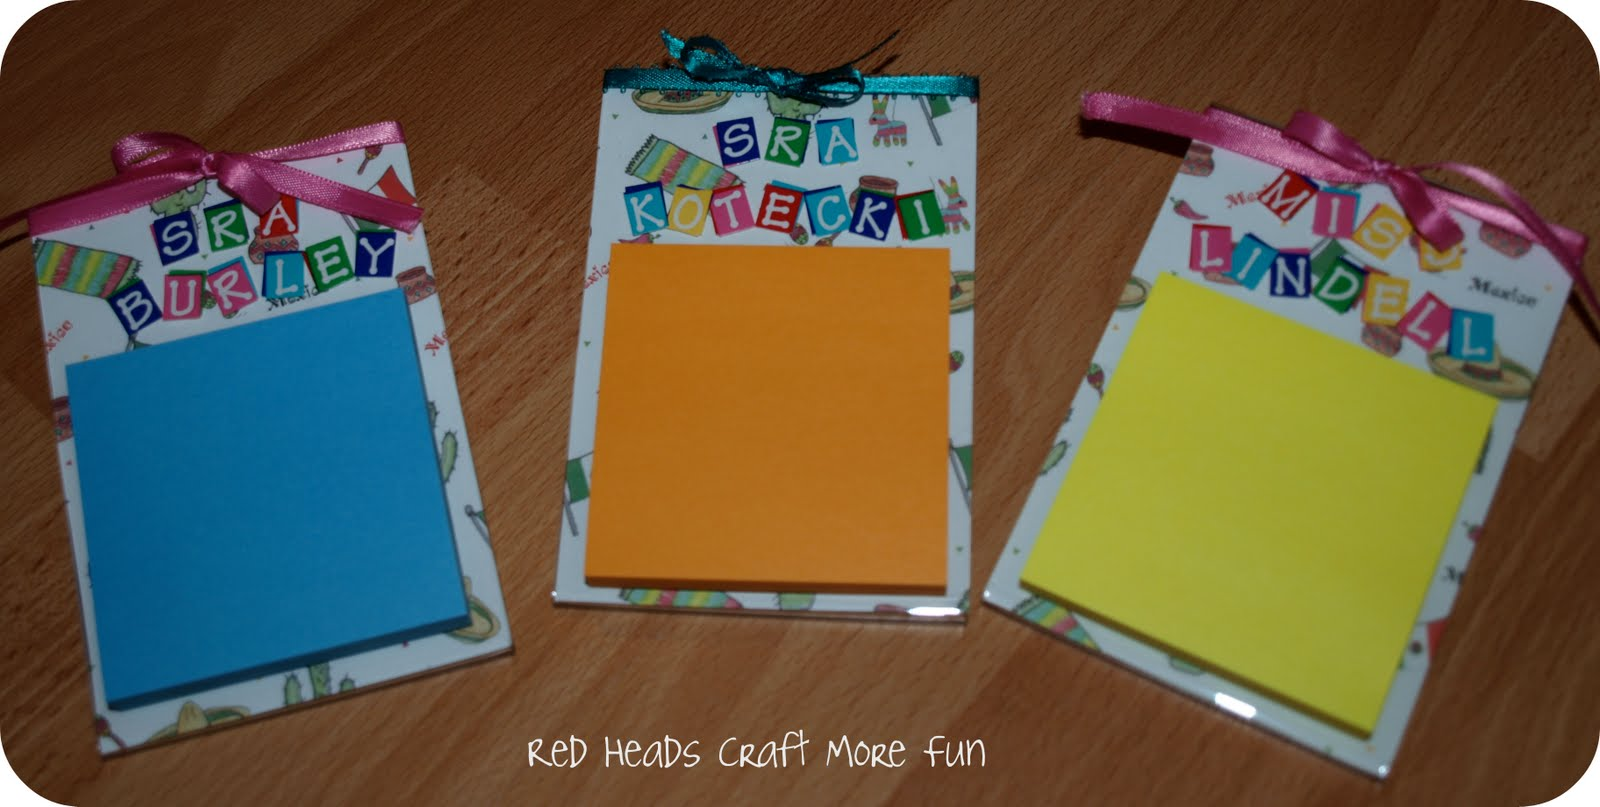 Red Heads Craft More Fun: Post It Note Holder